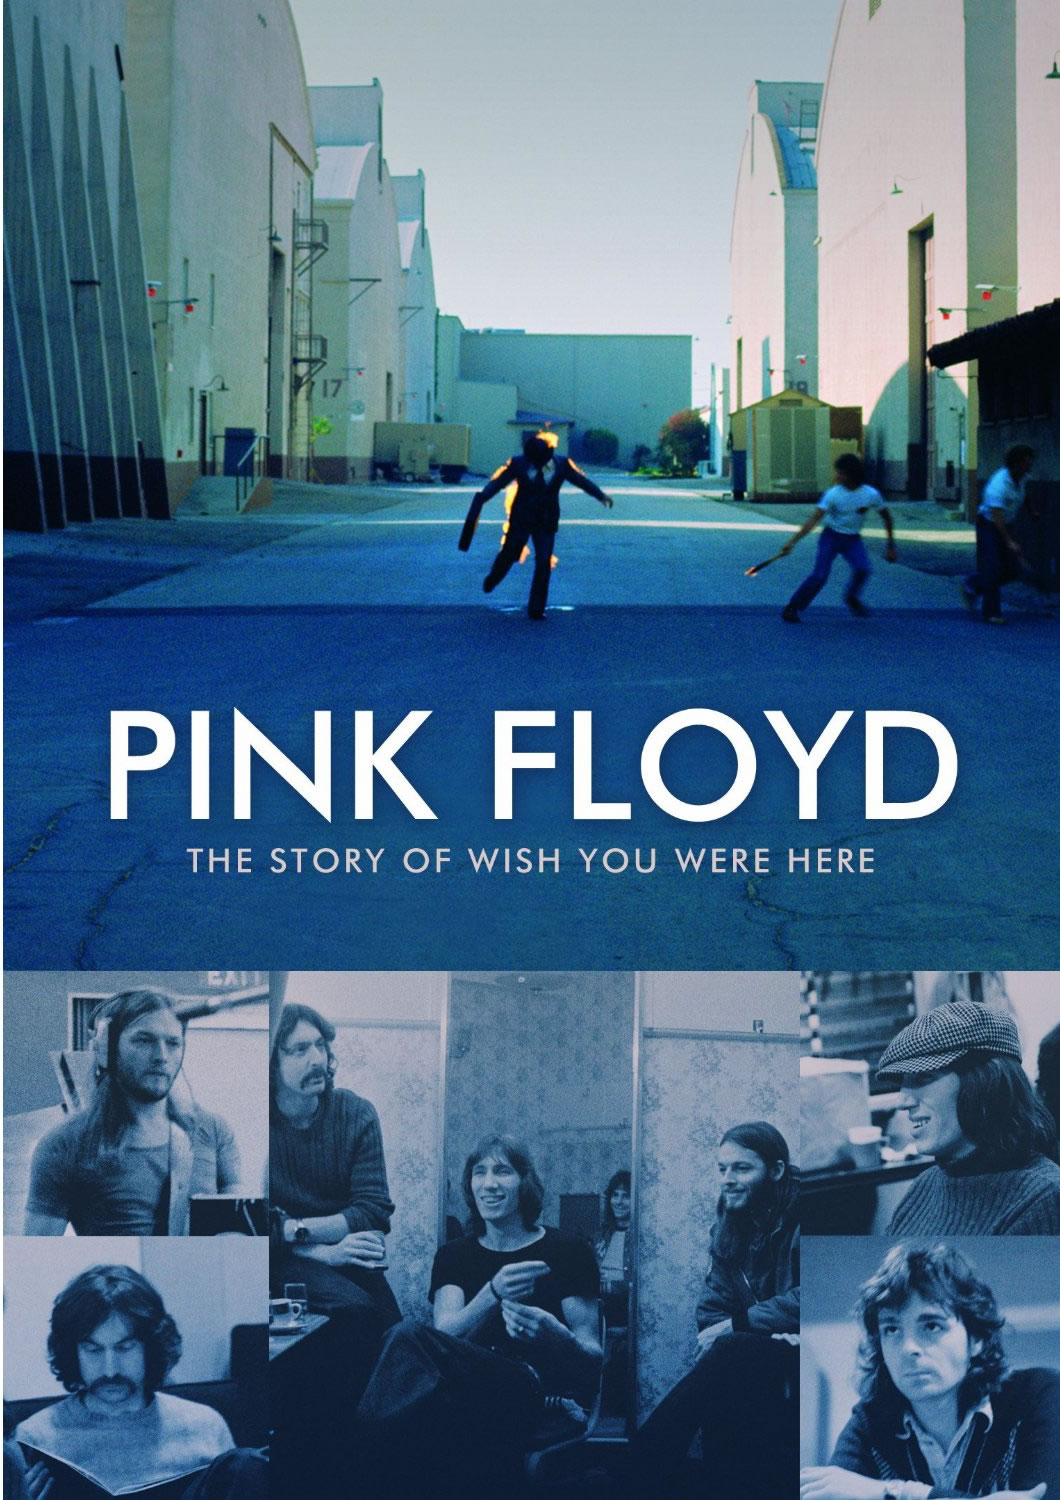 Pink Floyd Story of Wish You Were Here